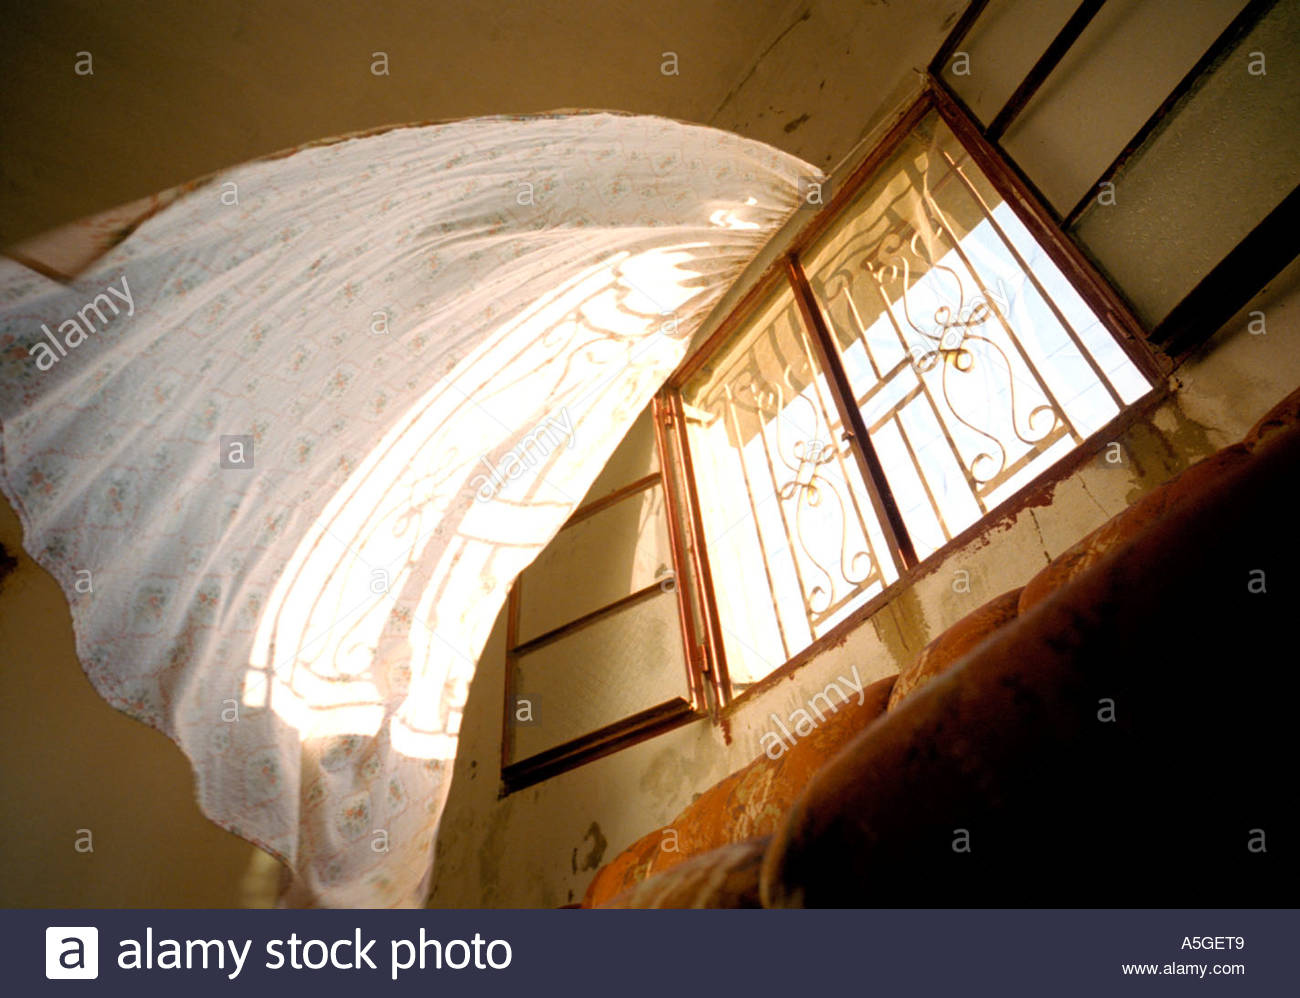 Open window with curtains blowing - Stock Photo The Wind Blowing Curtains From An Open Window Lebanon